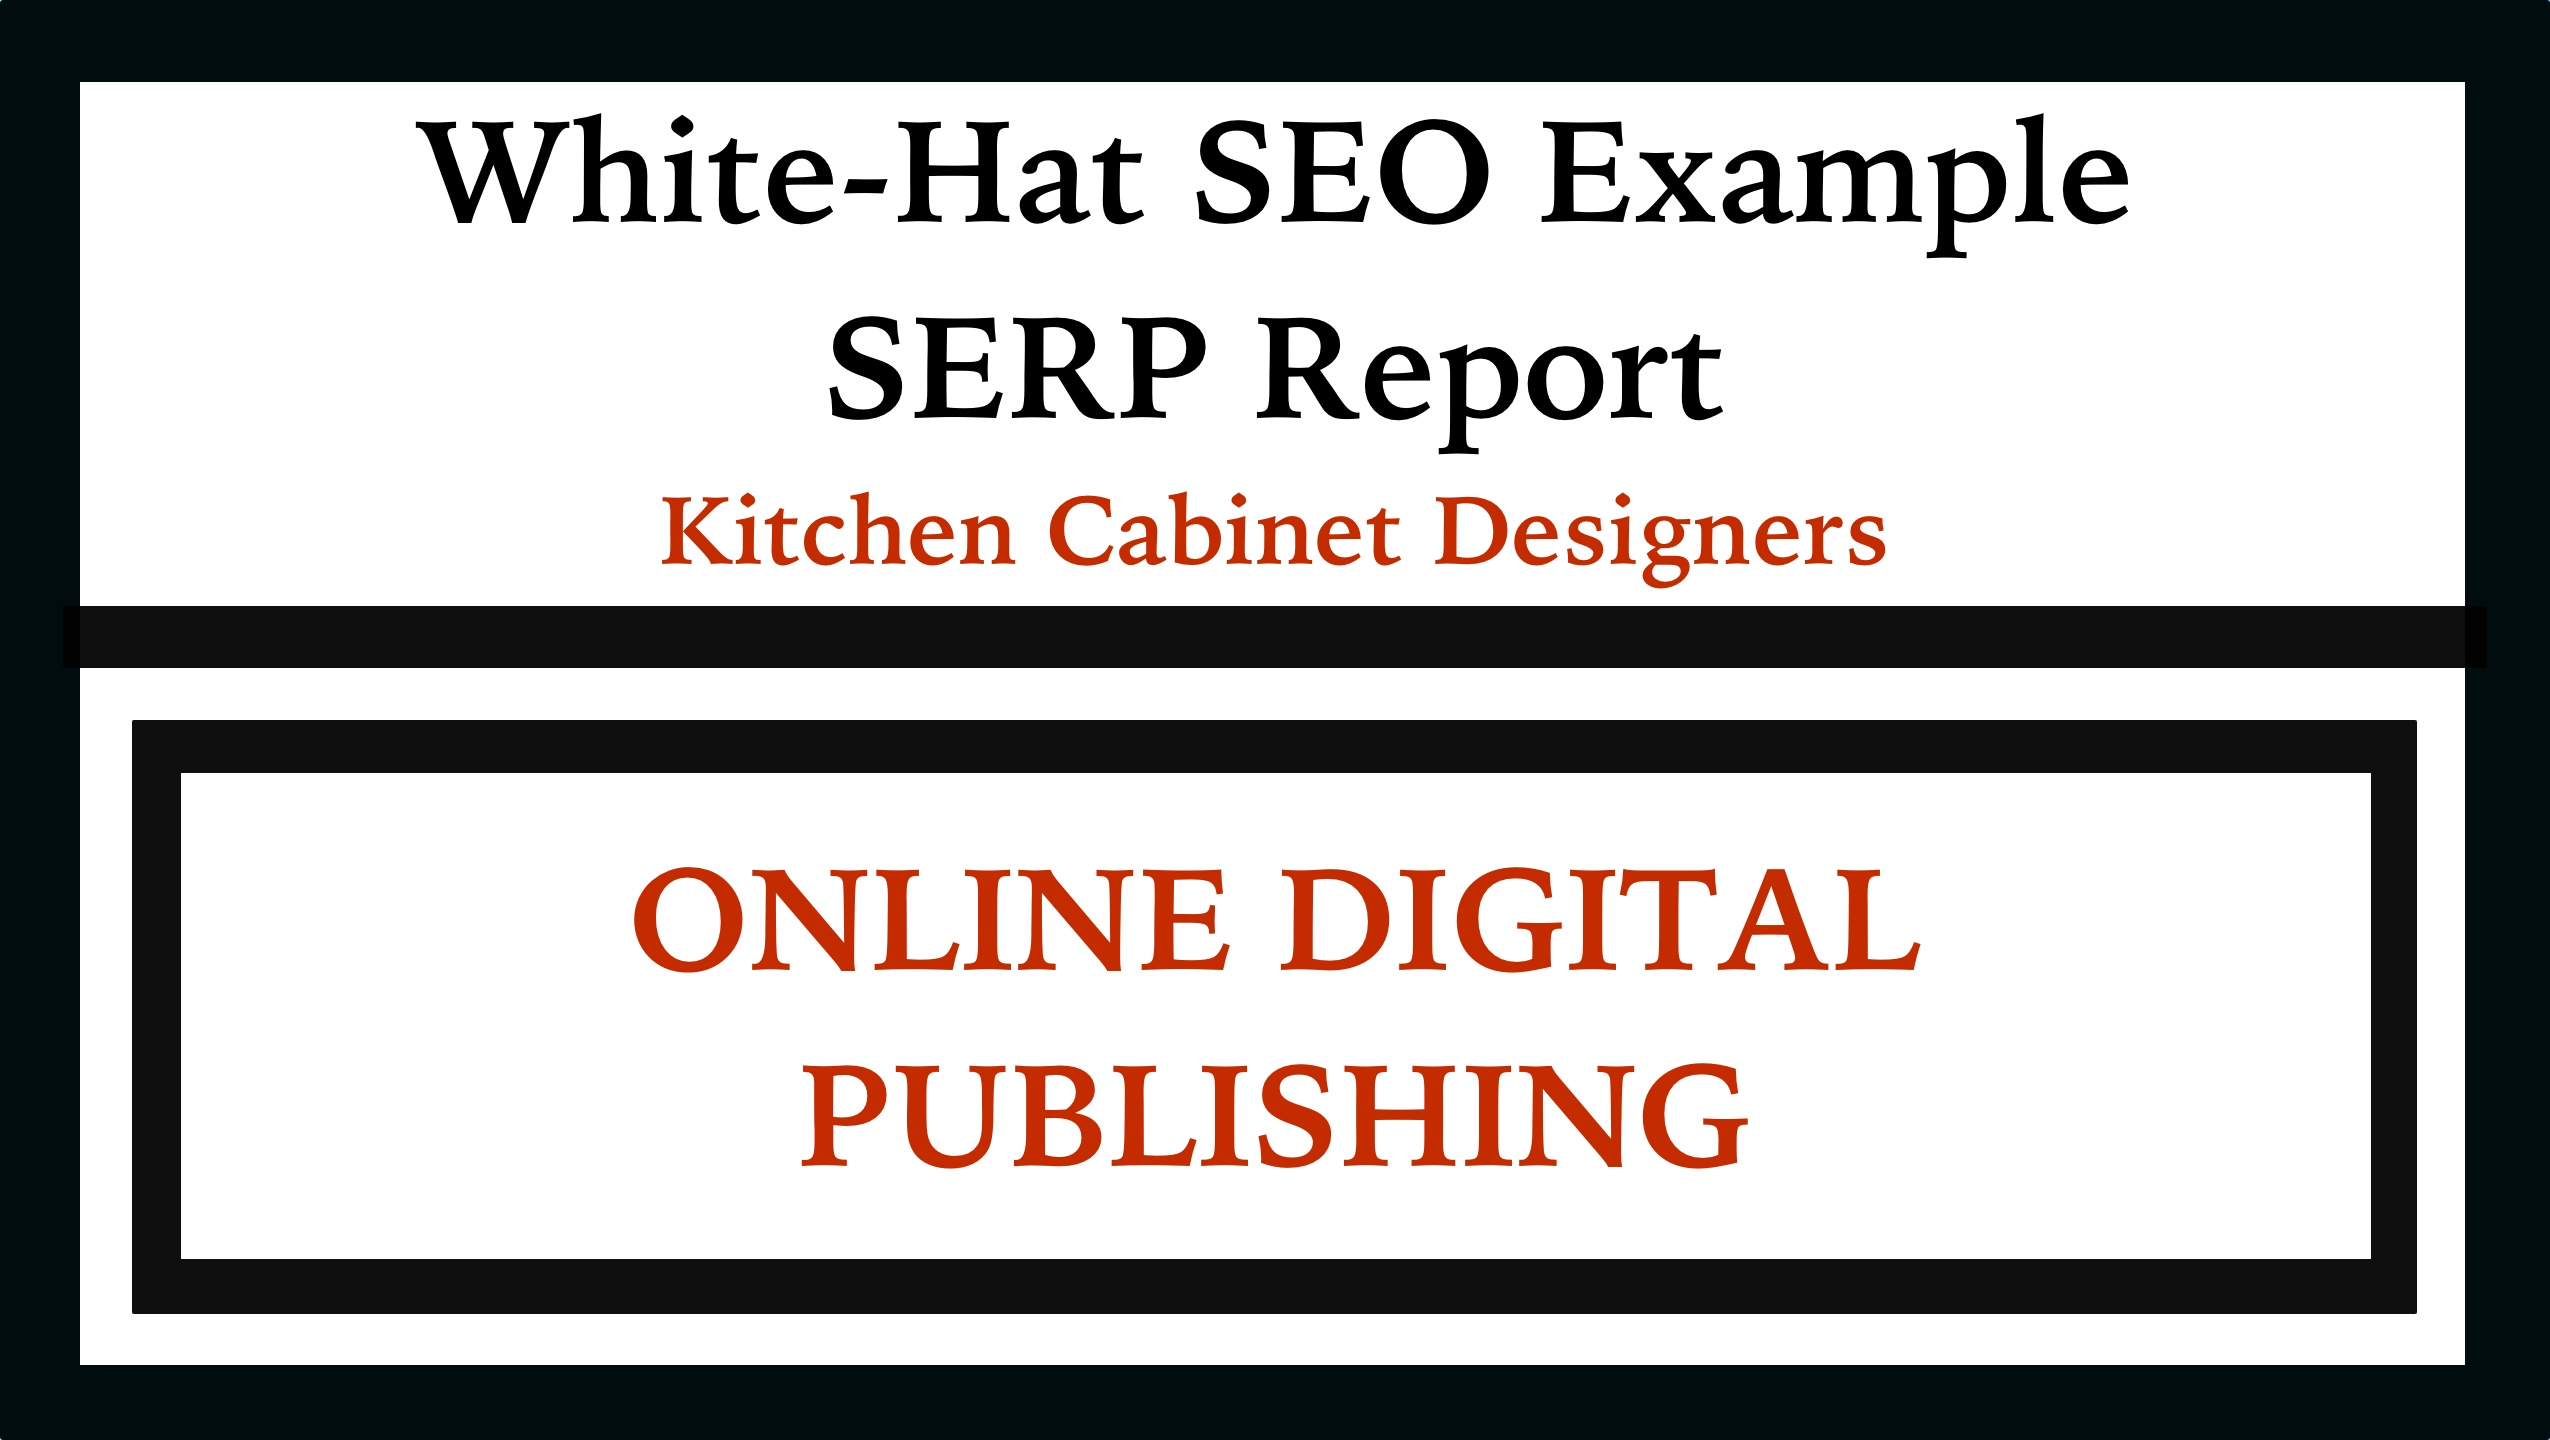 How to SEO White Hat with SERPS ex Cabinet Makers. This SERP, or search engine results page, example shows you exactly what can be gained from doing legal, or white-hat SEO. This example shows clearly how a local Charlottesville Custom Kitchen and cabinetry design shop can benefit from great online digital publishing through white-hat SEO techniques. The proof is clearly on Google's front page search engine results.